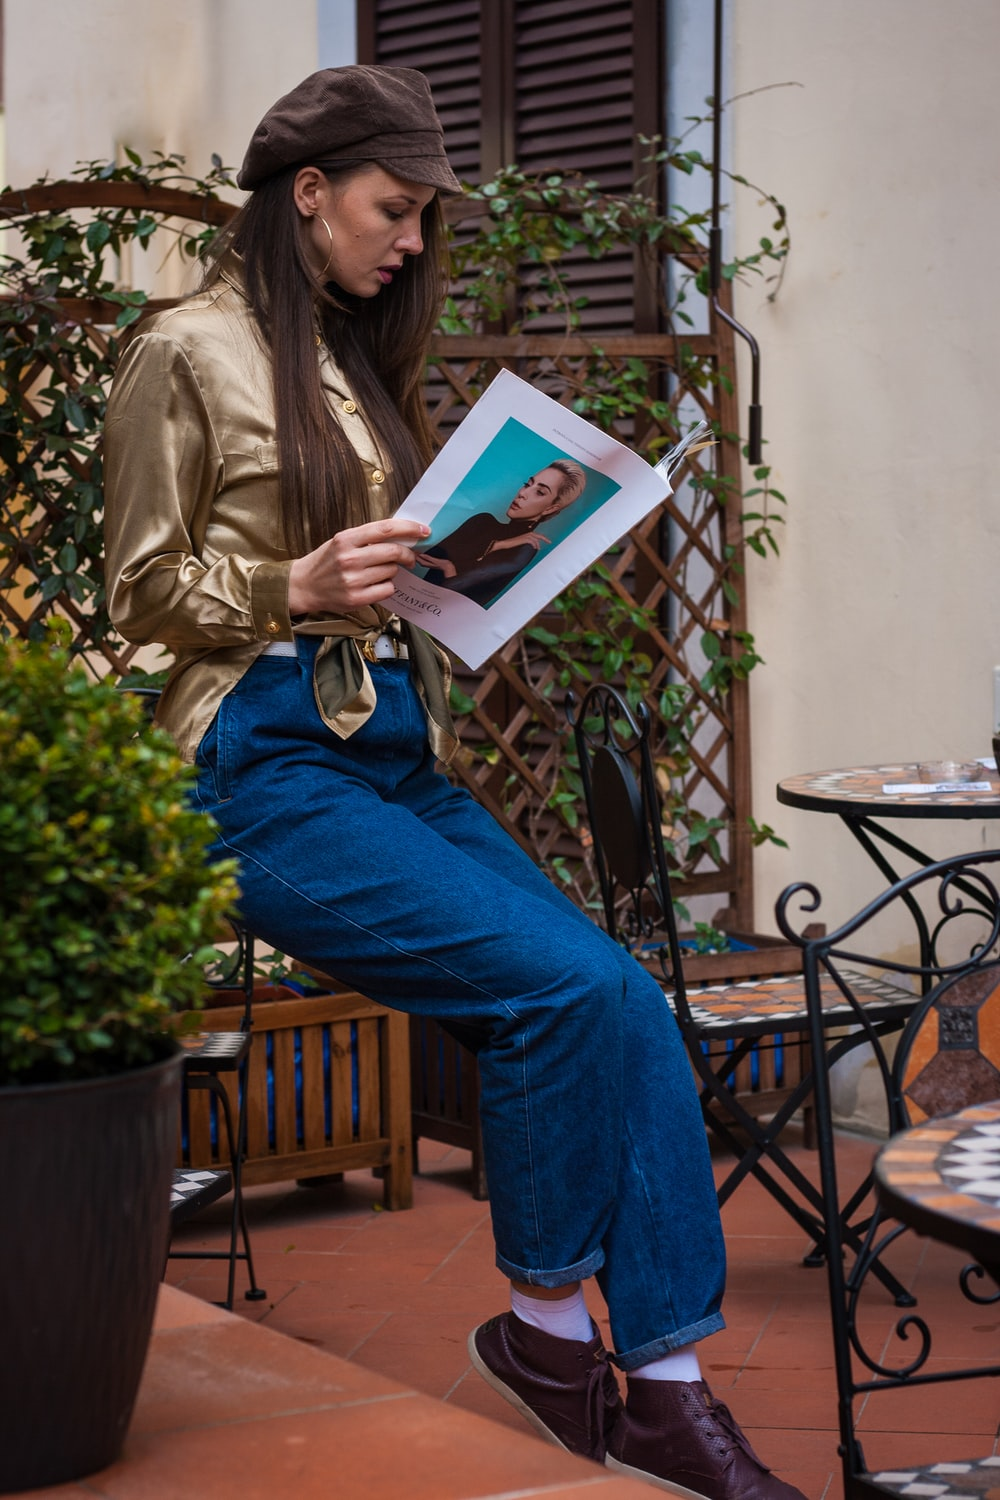 person in blue denim jeans holding blue book